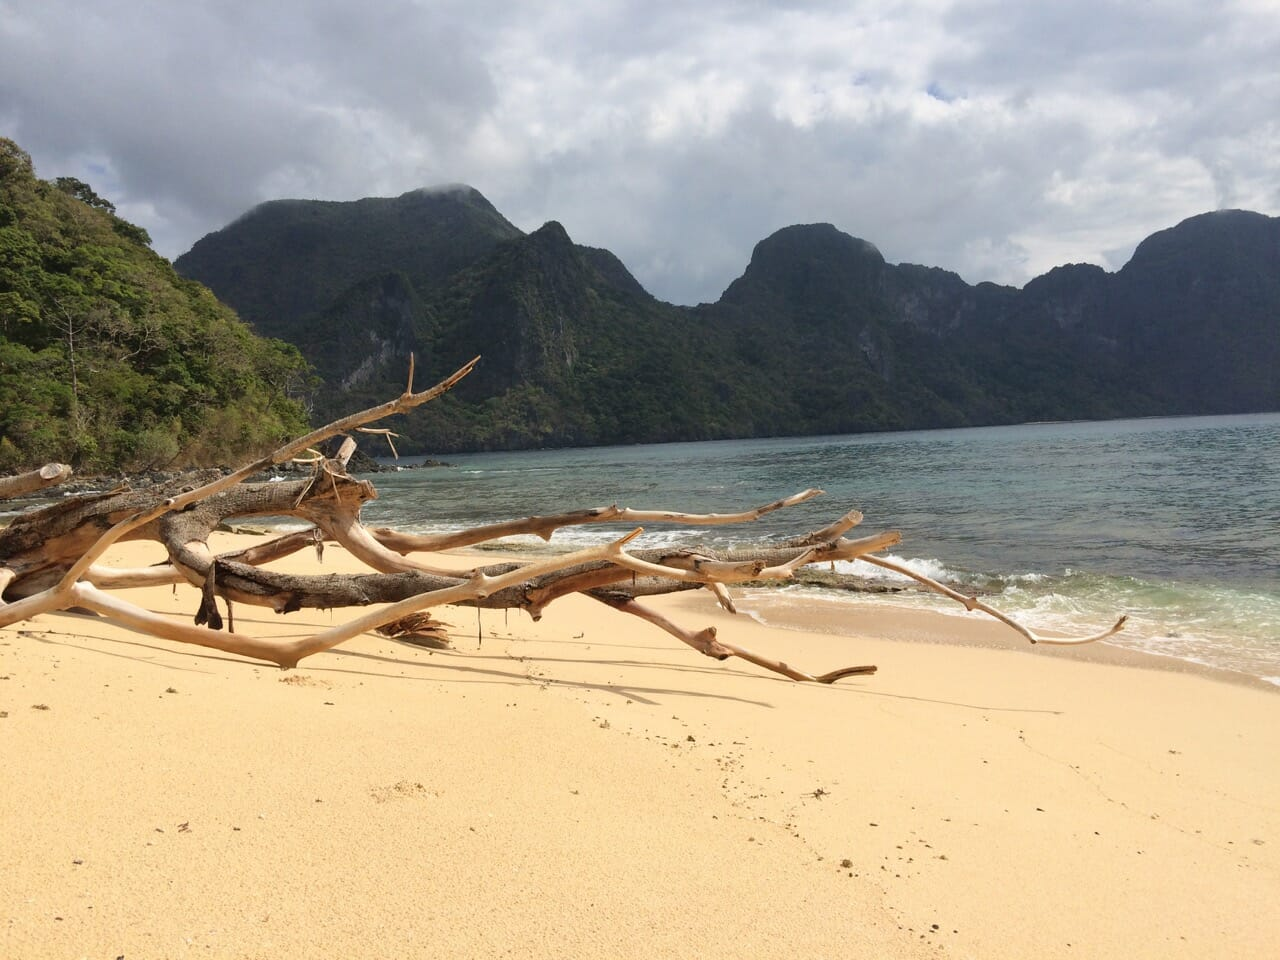 Helicopter Island, Palawan, Philippines